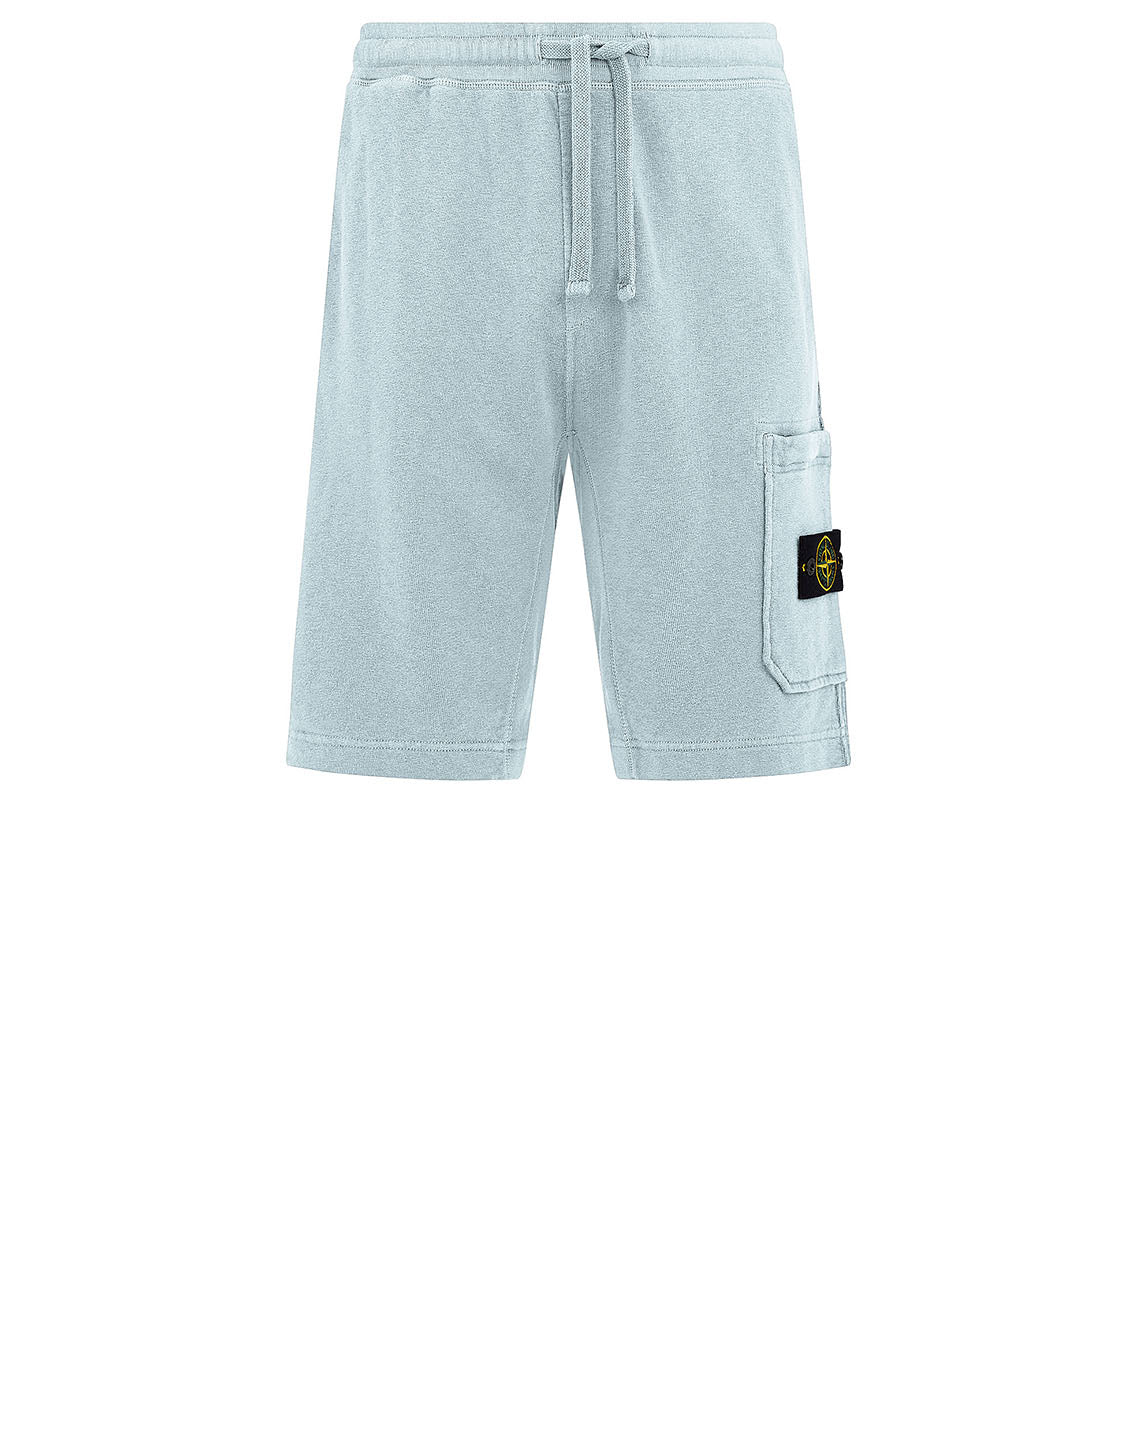 63560 T.CO+OLD Fleece Bermuda Shorts in Sky Blue